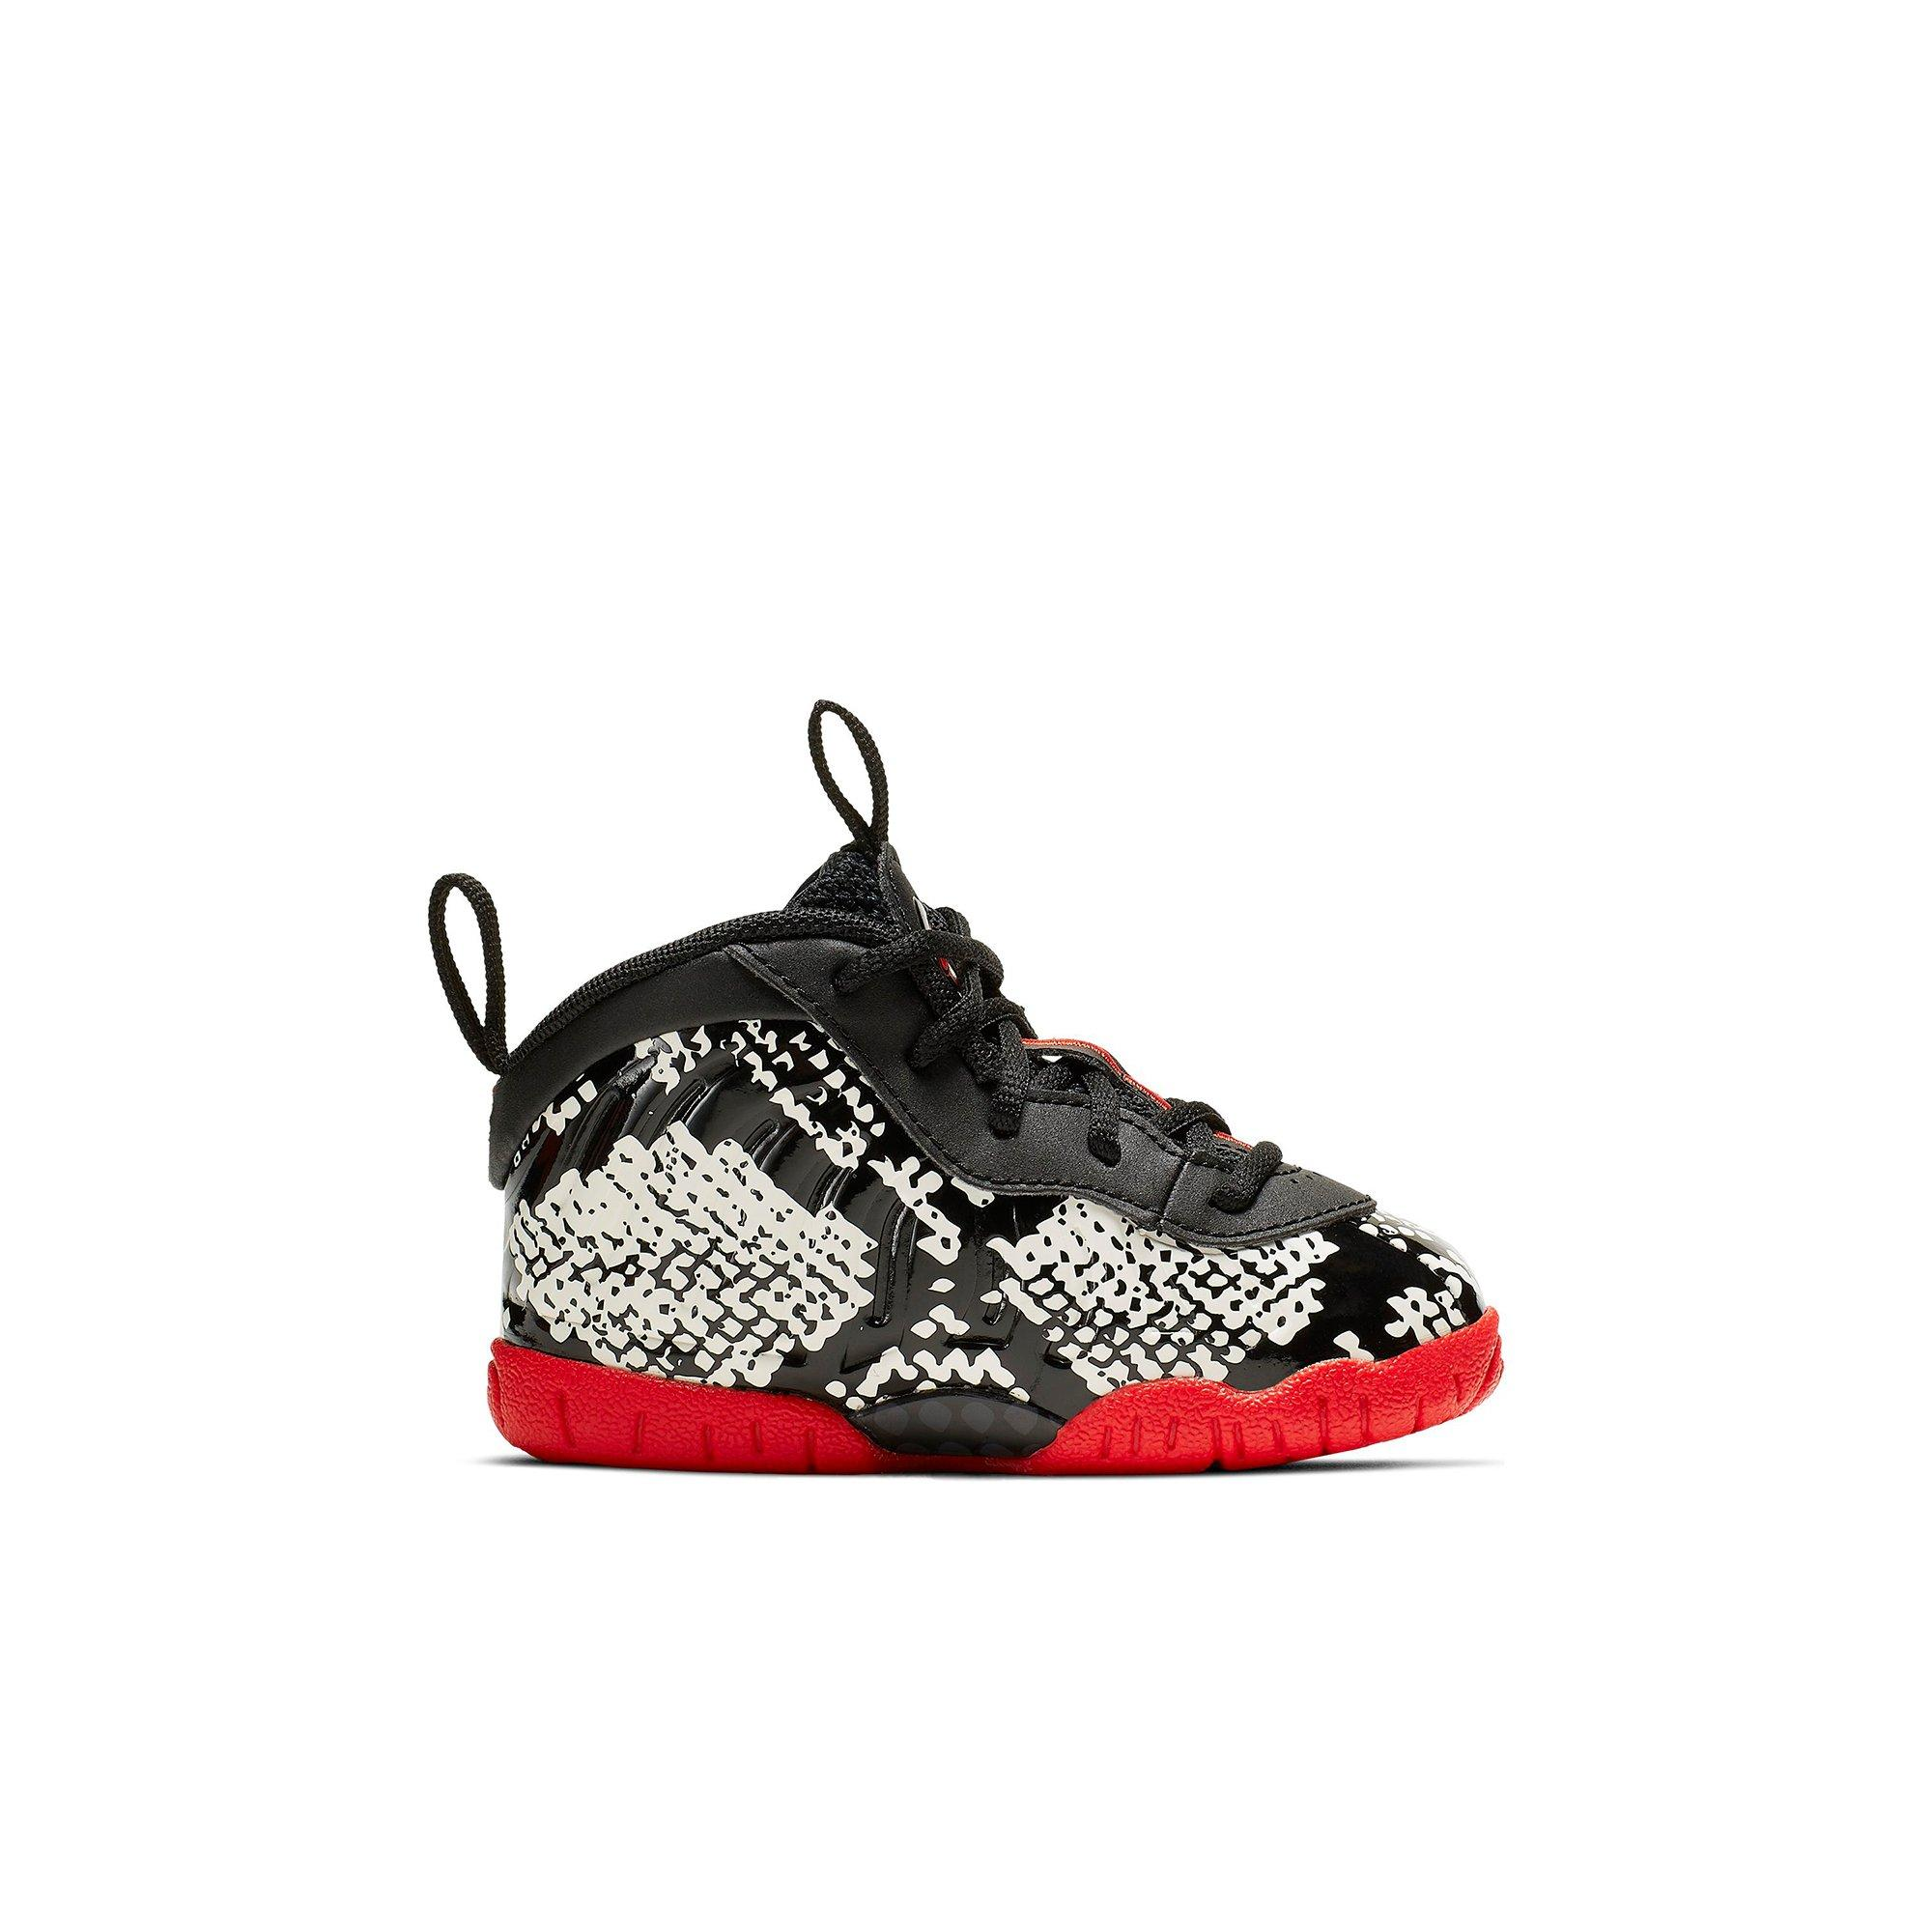 2007 s Nike Air Foamposite One Anthracite Returns this ...